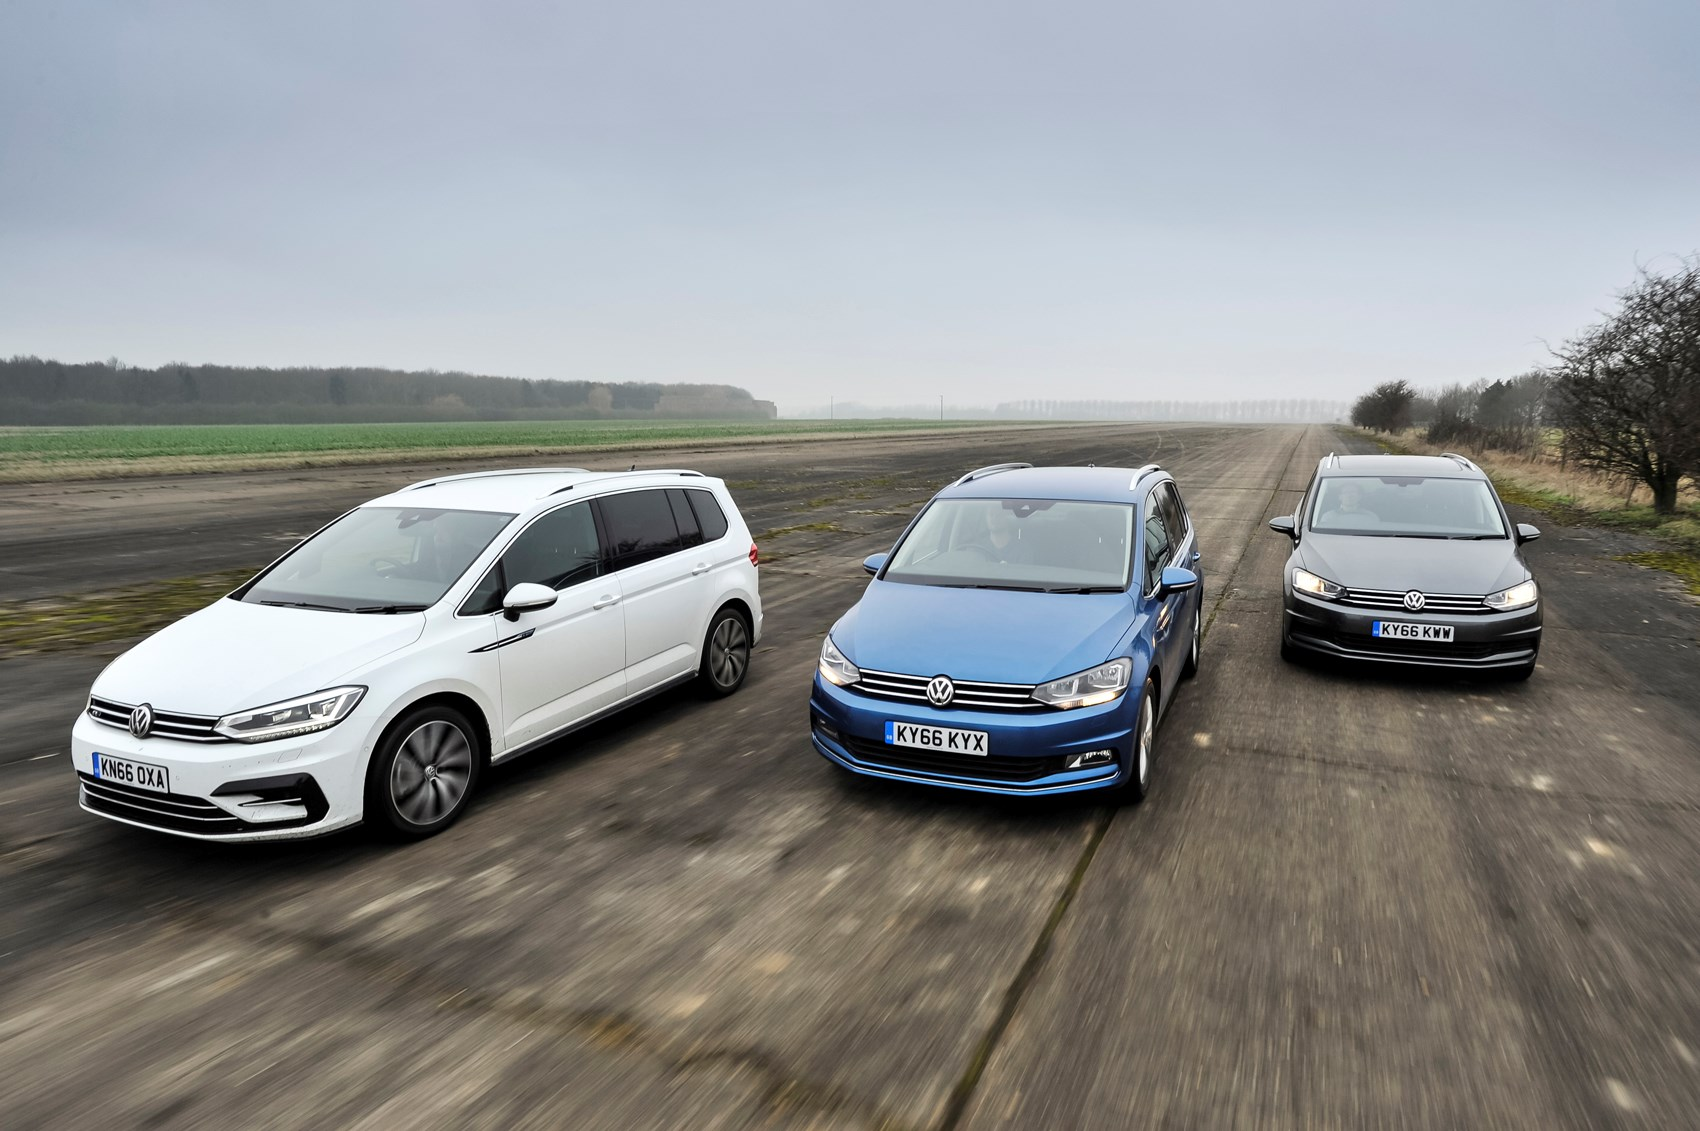 Vw Touran Flexible And Fuss Free Parkers Volkswagen Exterior Light Control Wiring System Which To Buy